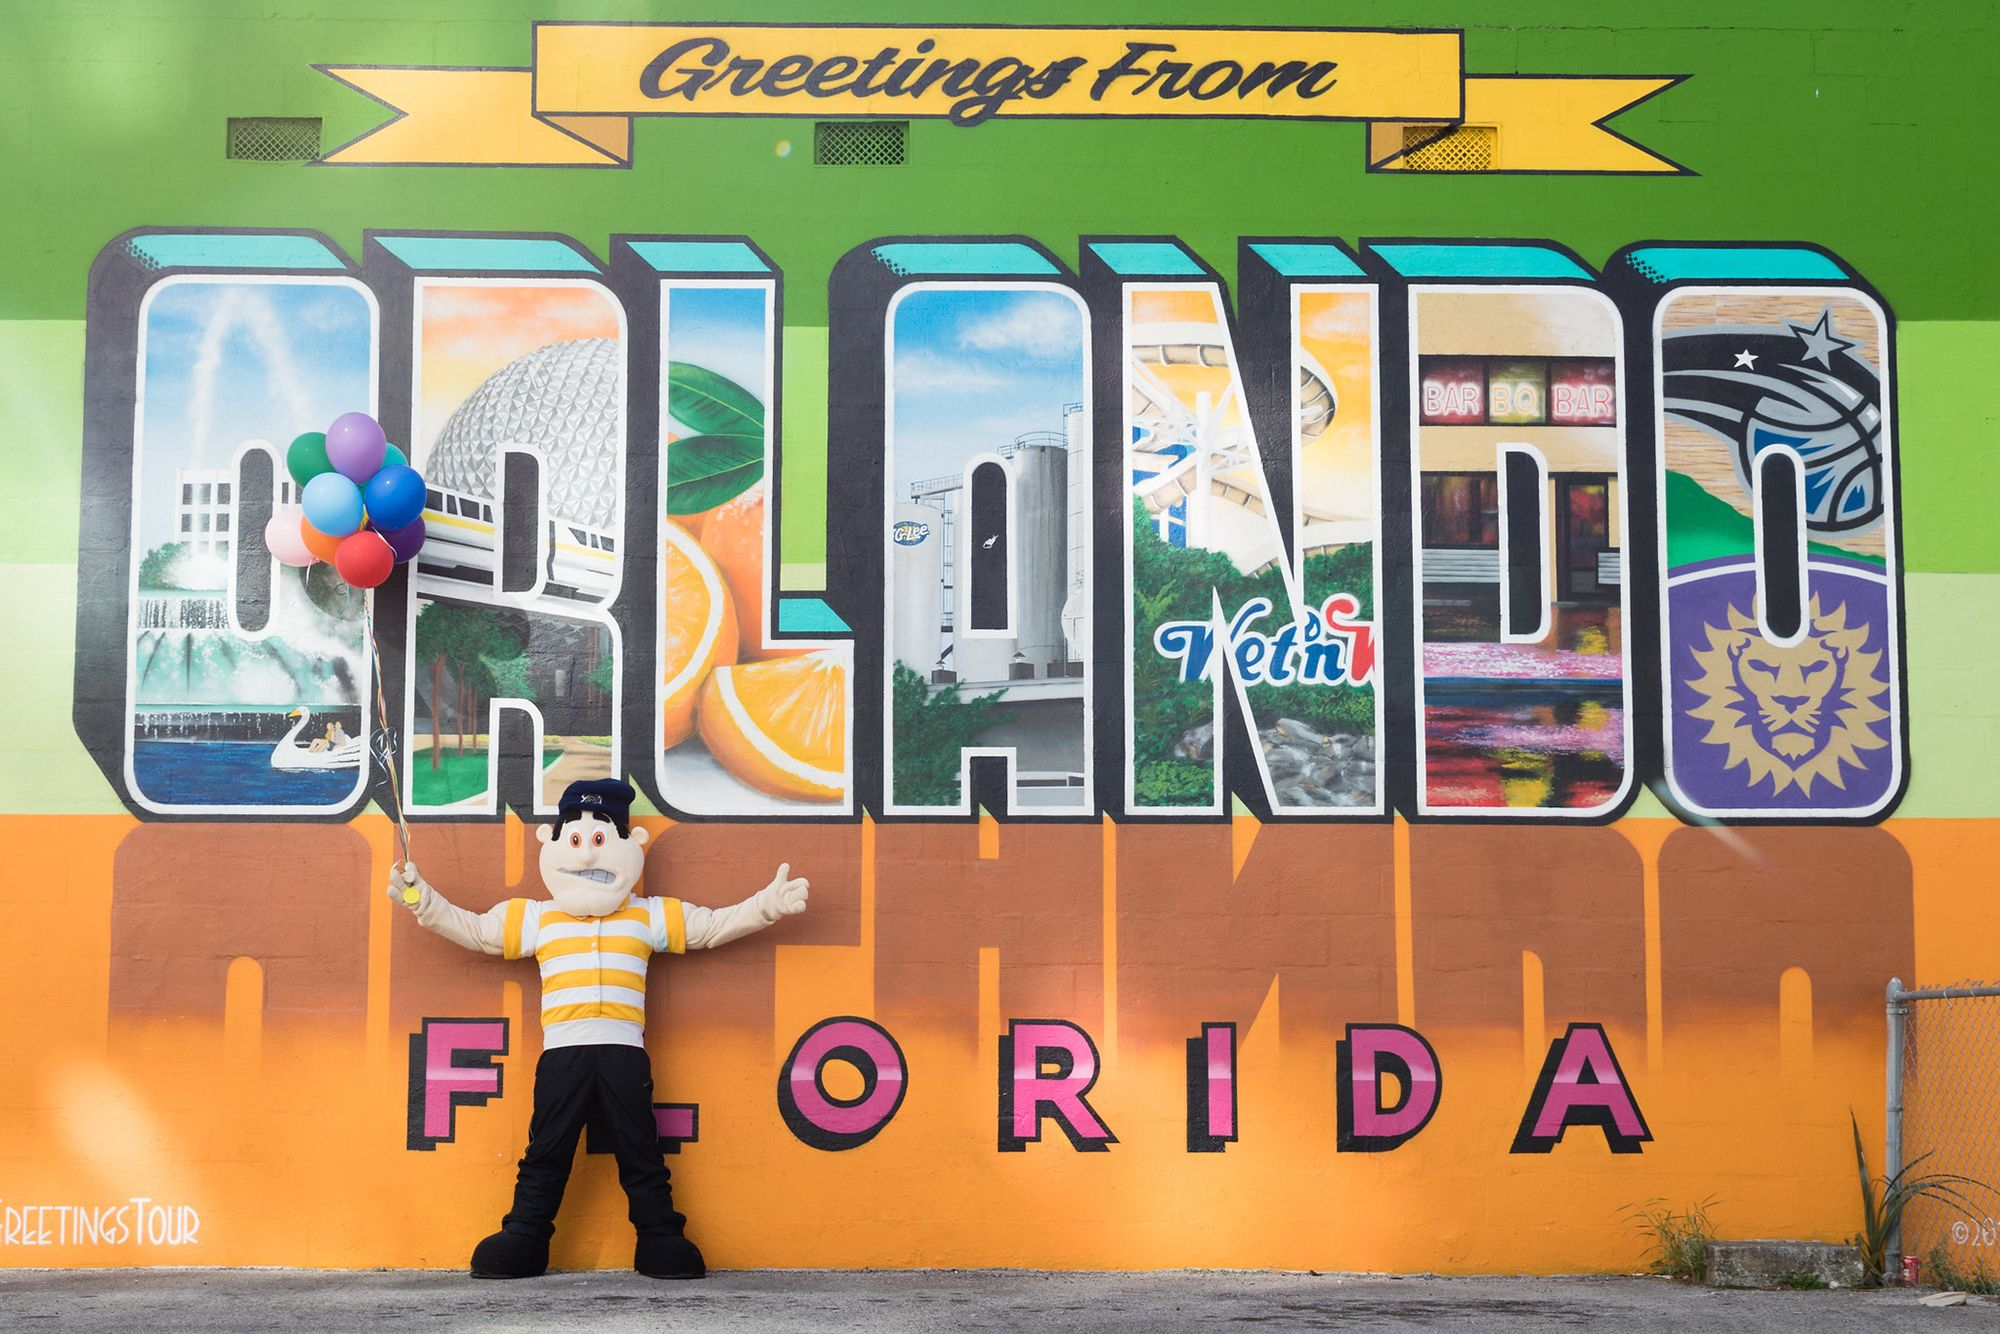 Tommy Tar posing with the Greetings from Orlando mural